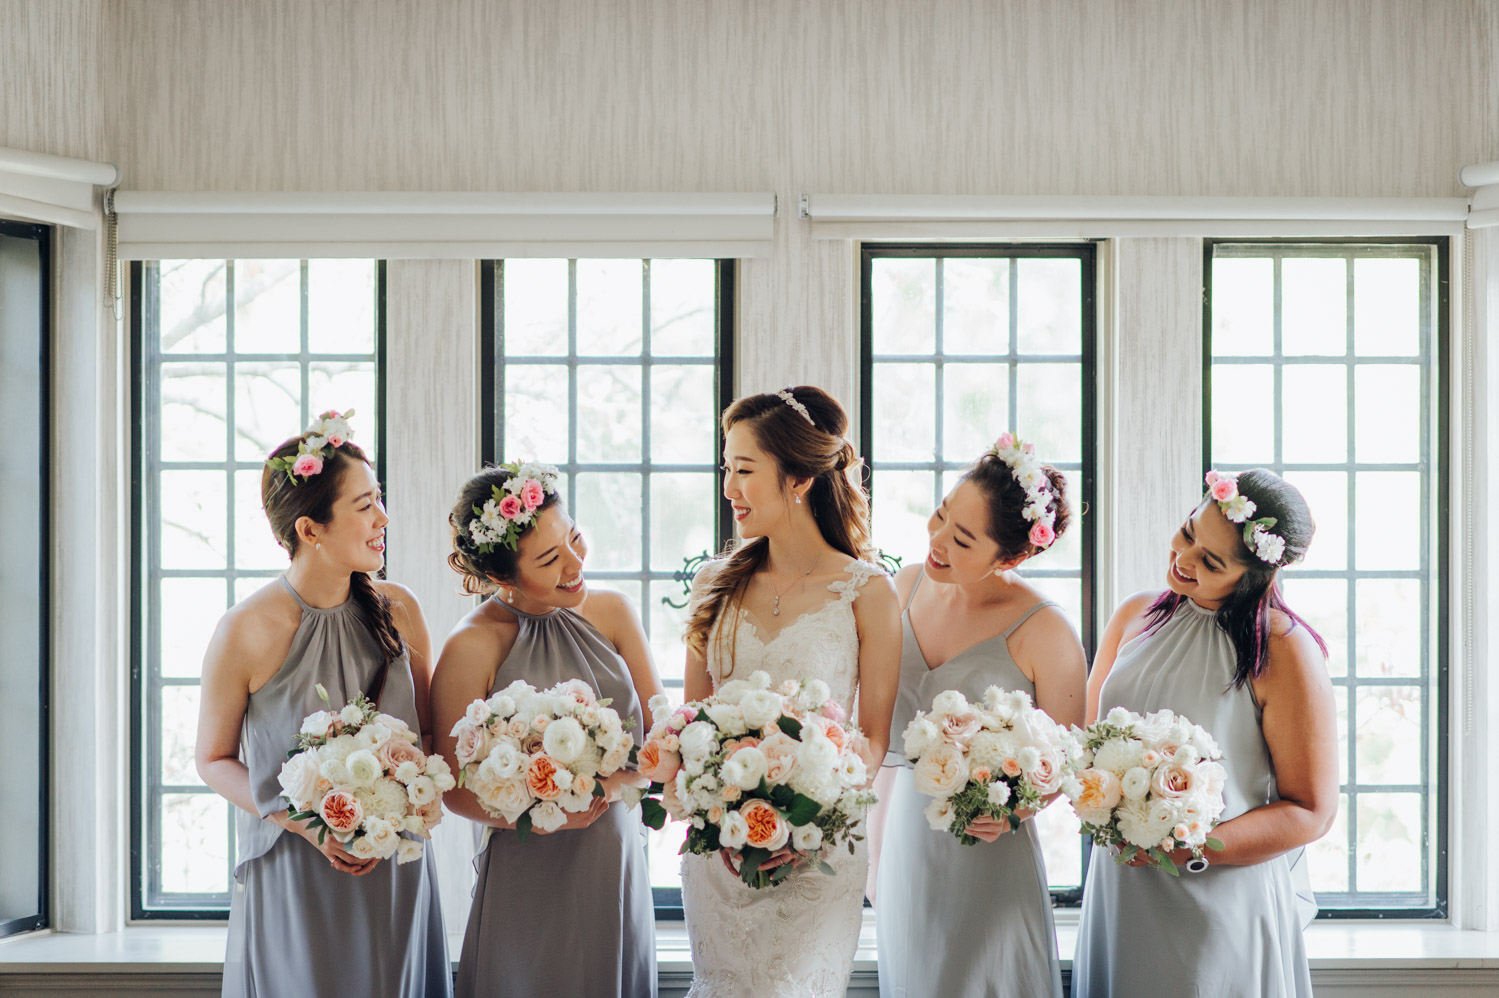 Bridal party photo Getting Ready at the Estates of Sunnybrook Vaughan Estate